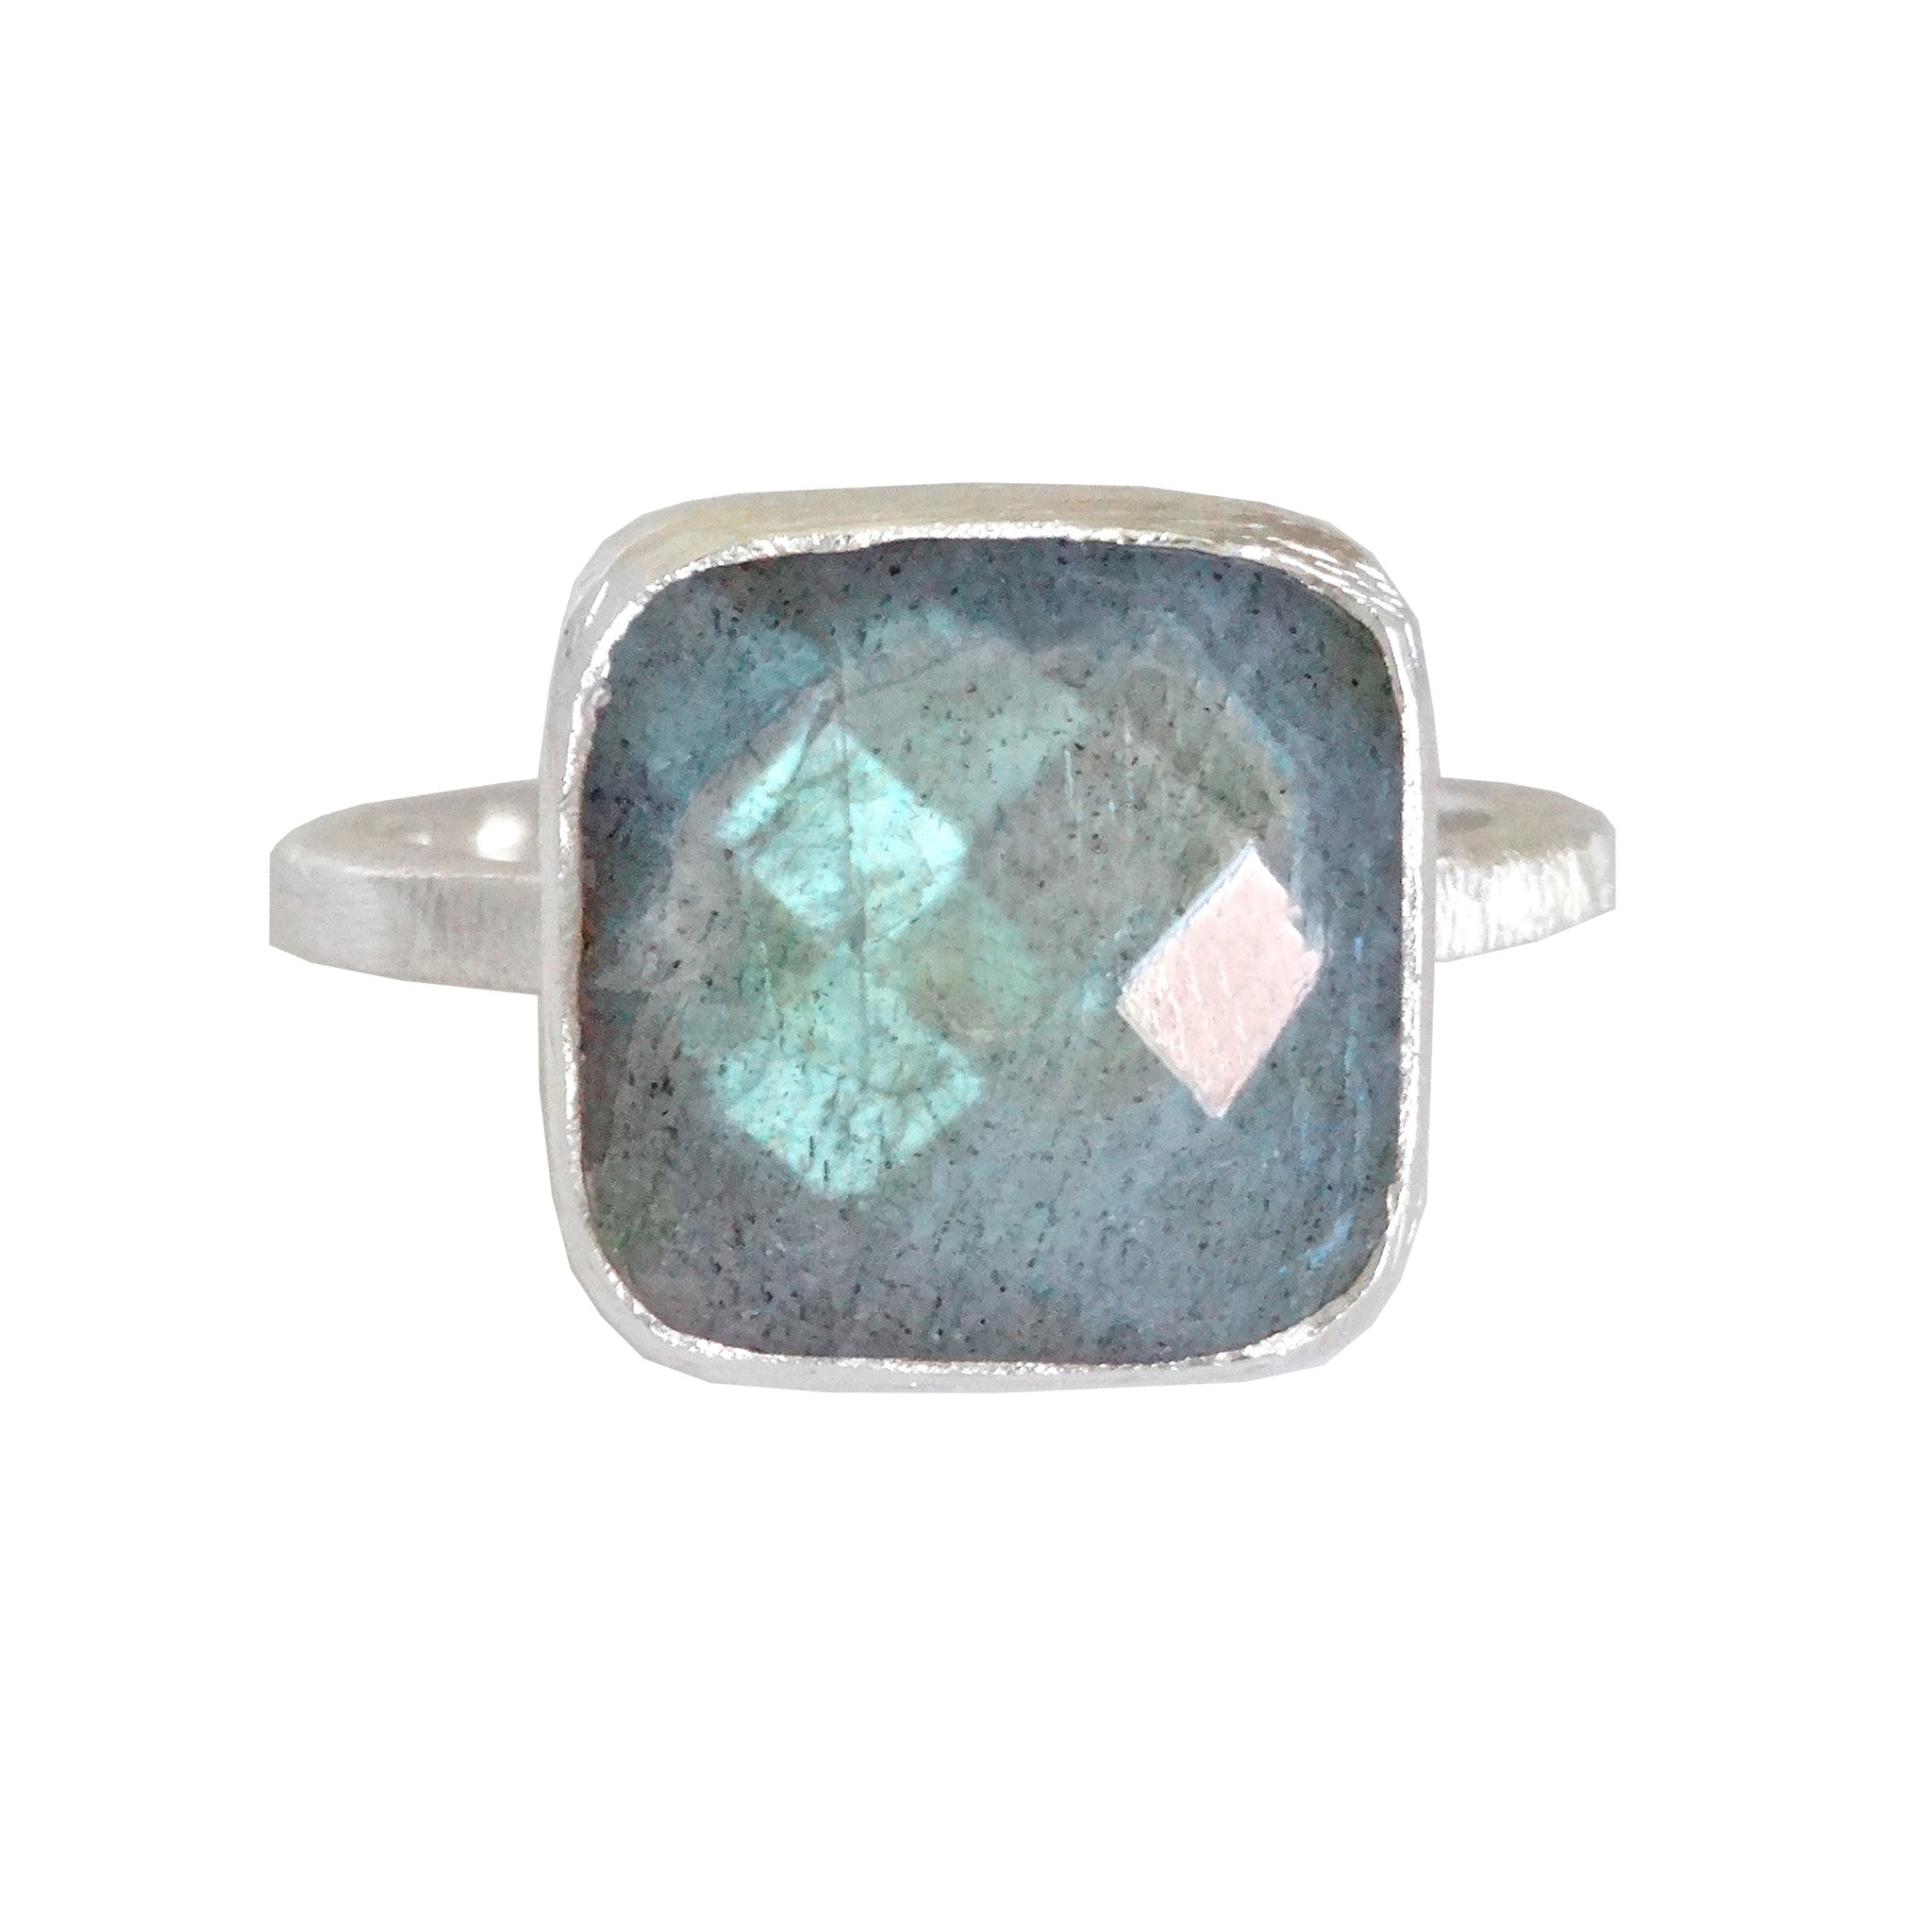 ring jewelry jewellers img pegg white teal chester home on shop gold diamond rings london